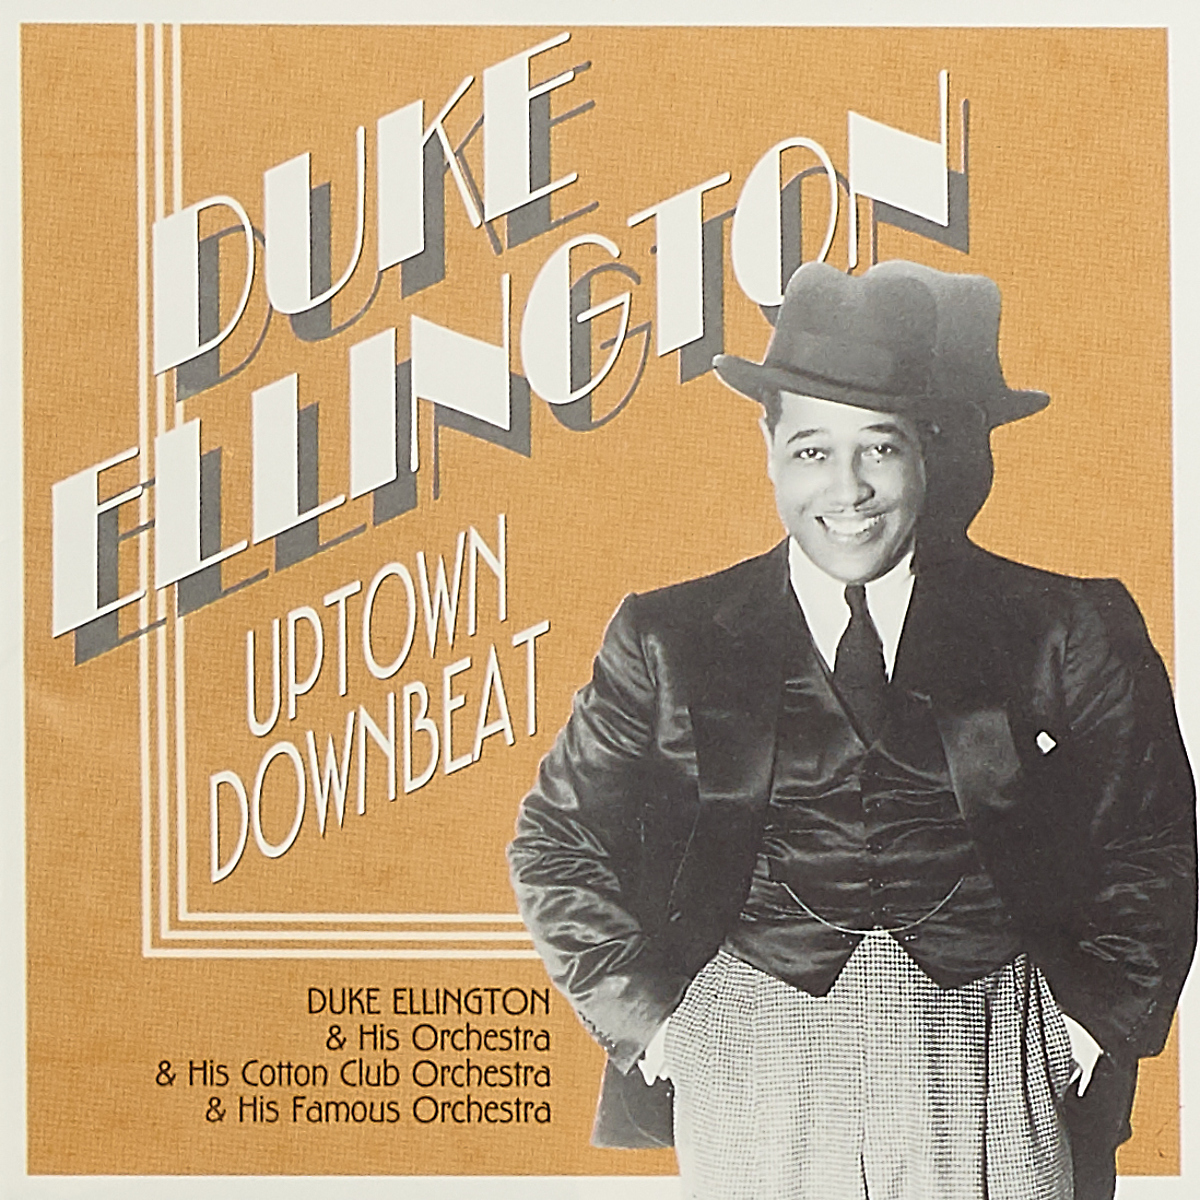 Duke Ellington And His Orchestra Duke Ellington And His Orchestra. Uptown Downbeat duke ellington it s showtime